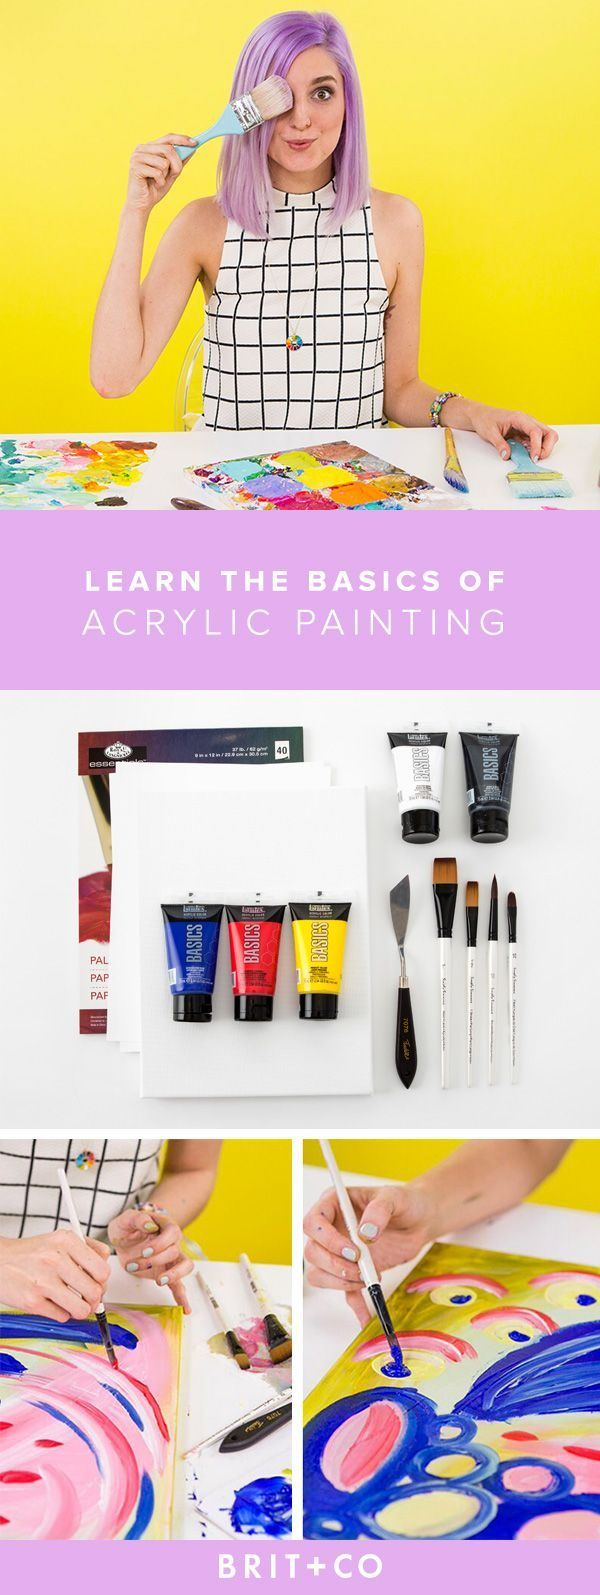 Learn how to paint with acrylics over at Brit&Co. Learn how to apply base colours to canvas and techniques to create texture with your paintings! http://www.hearthandmade.co.uk/10-best-online-craft-classes/?utm_campaign=coschedule&utm_source=pinterest&utm_medium=Heart%20Handmade%20UK&utm_content=10%20Of%20The%20Best%20Online%20Art%20Tutorials%20Around%20The%20Interwebs%21